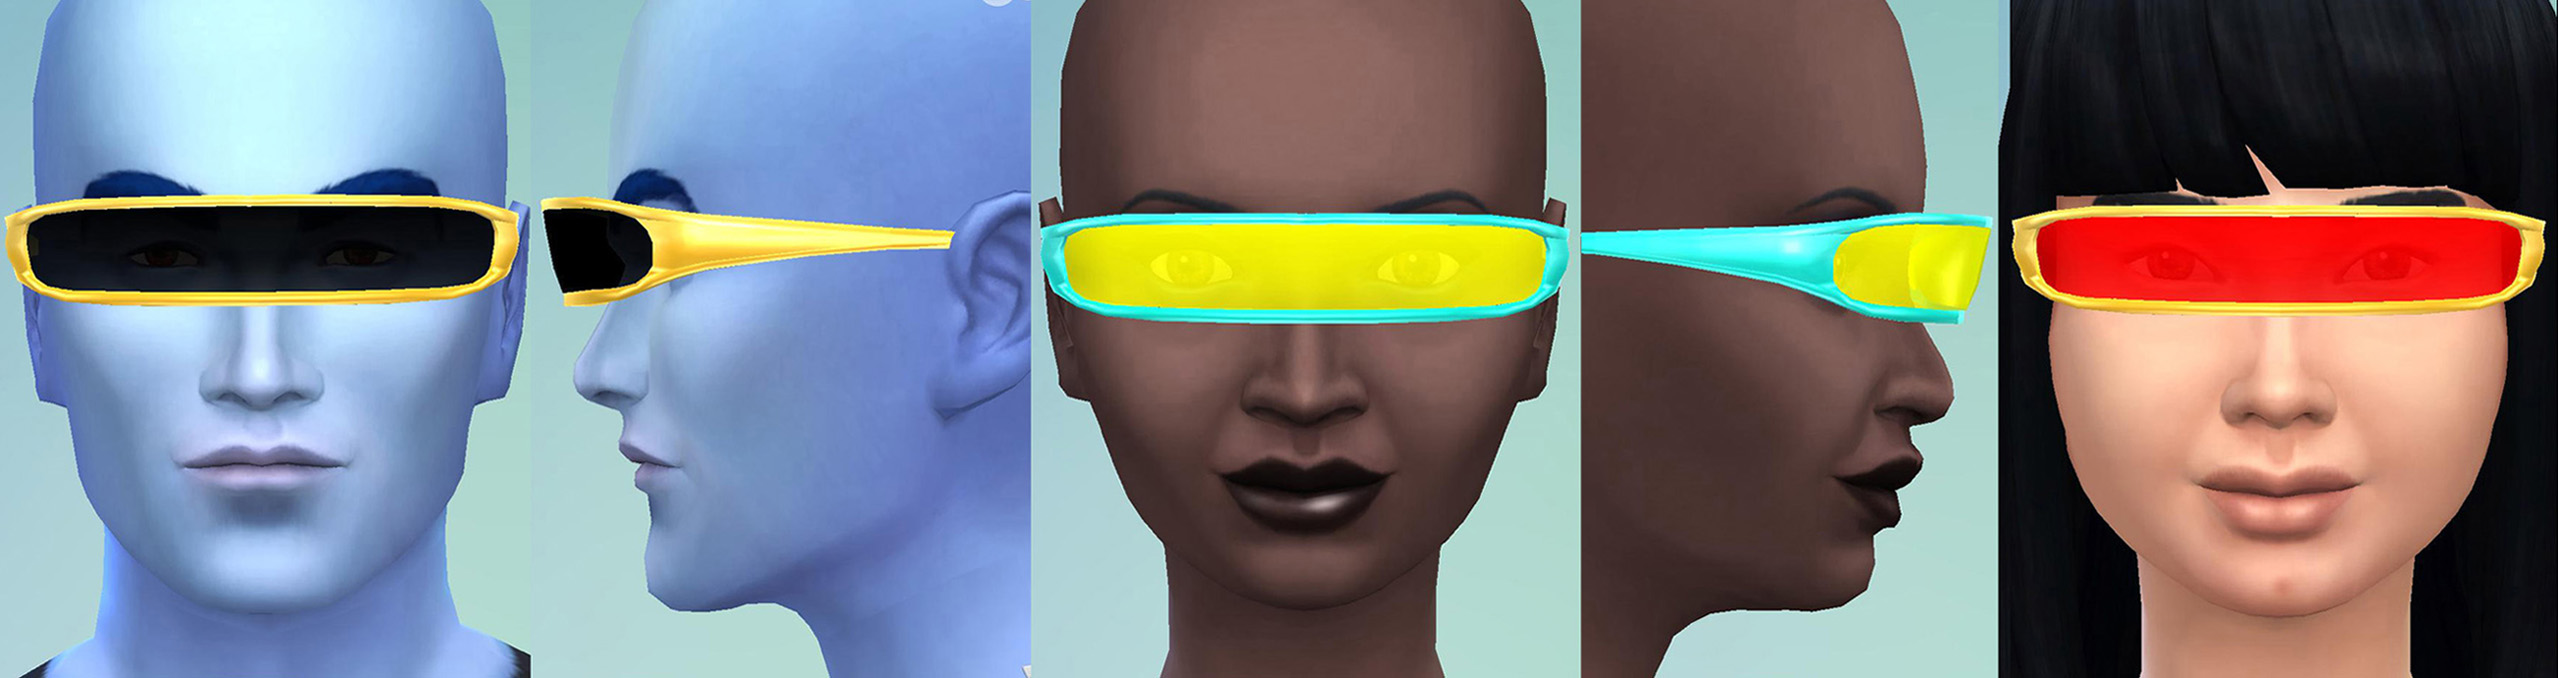 Cyborg Visor (TS4 Version) by Esmeralda